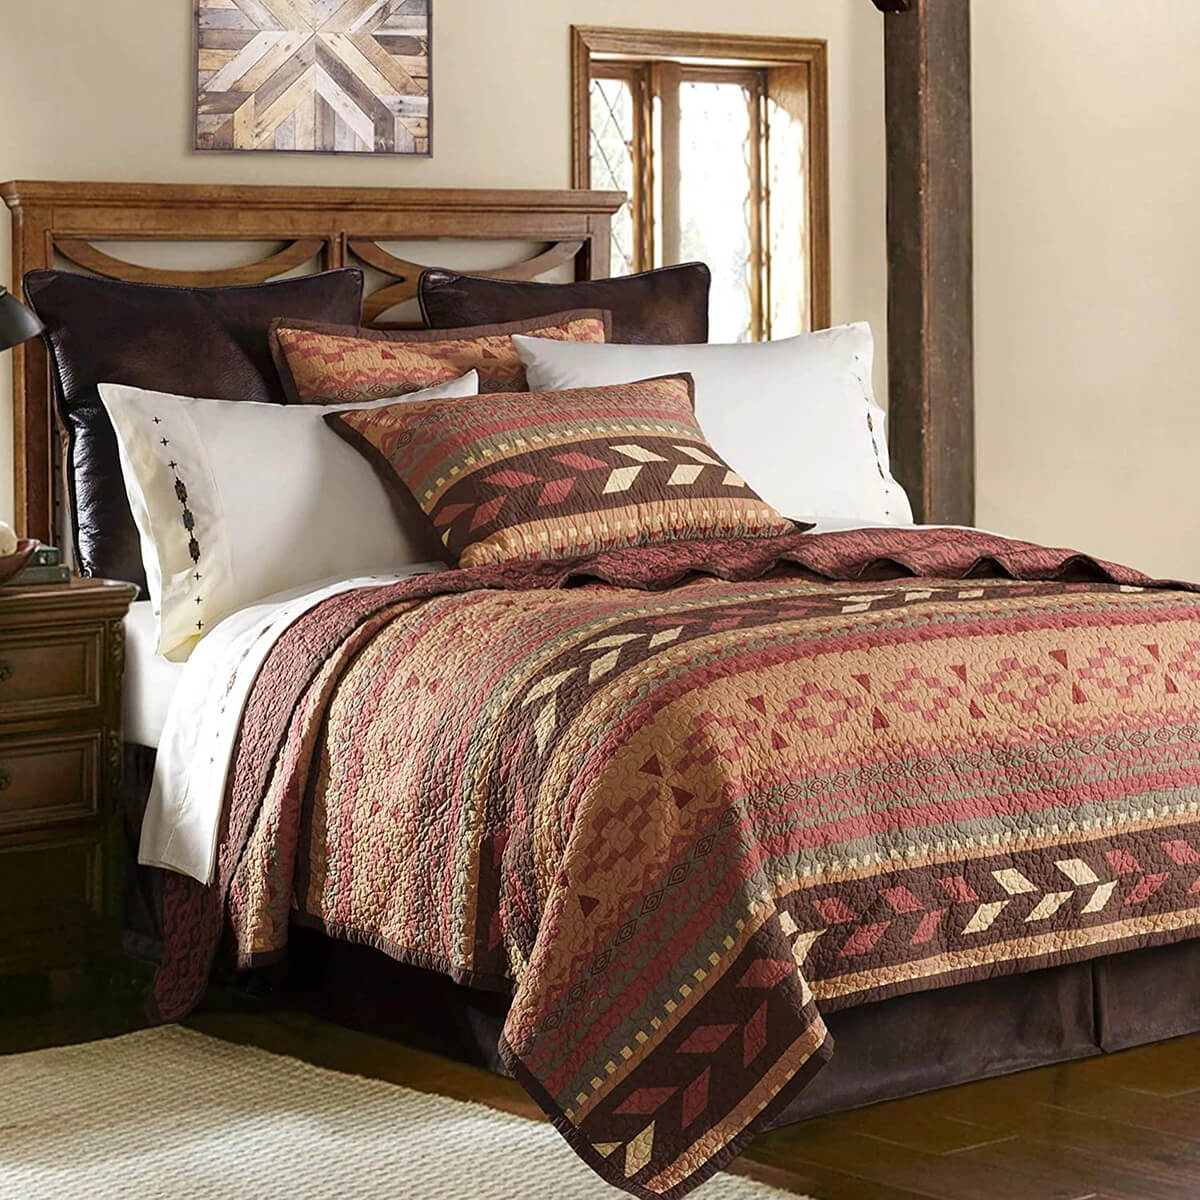 Fall Toned Seasonal Southwest Bedroom Decor